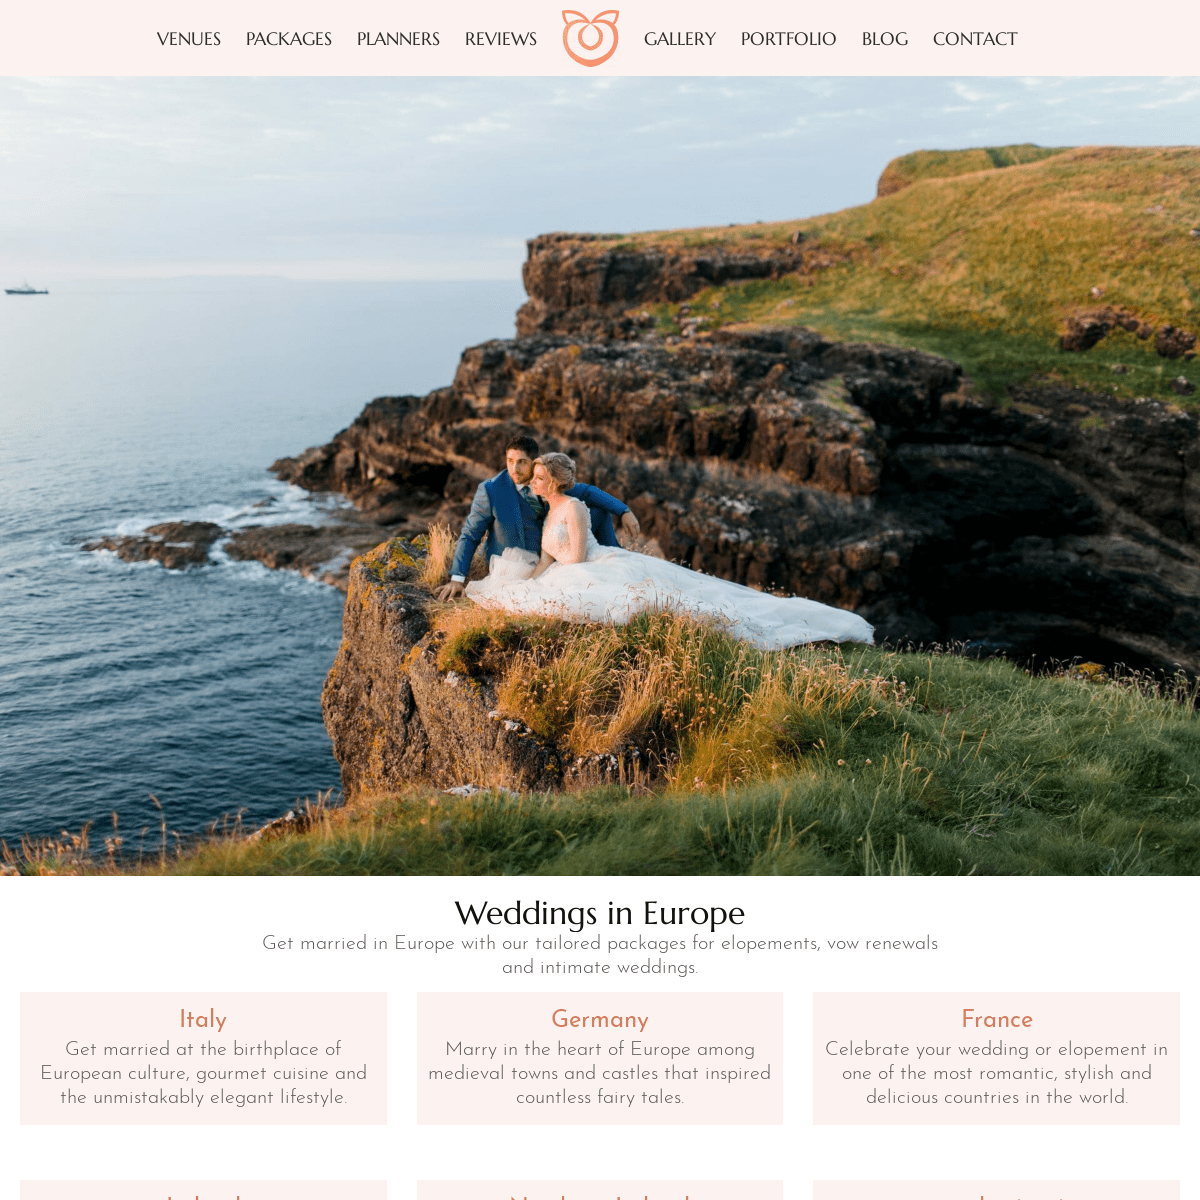 Wedding in Europe - packages for destination weddings and elopements